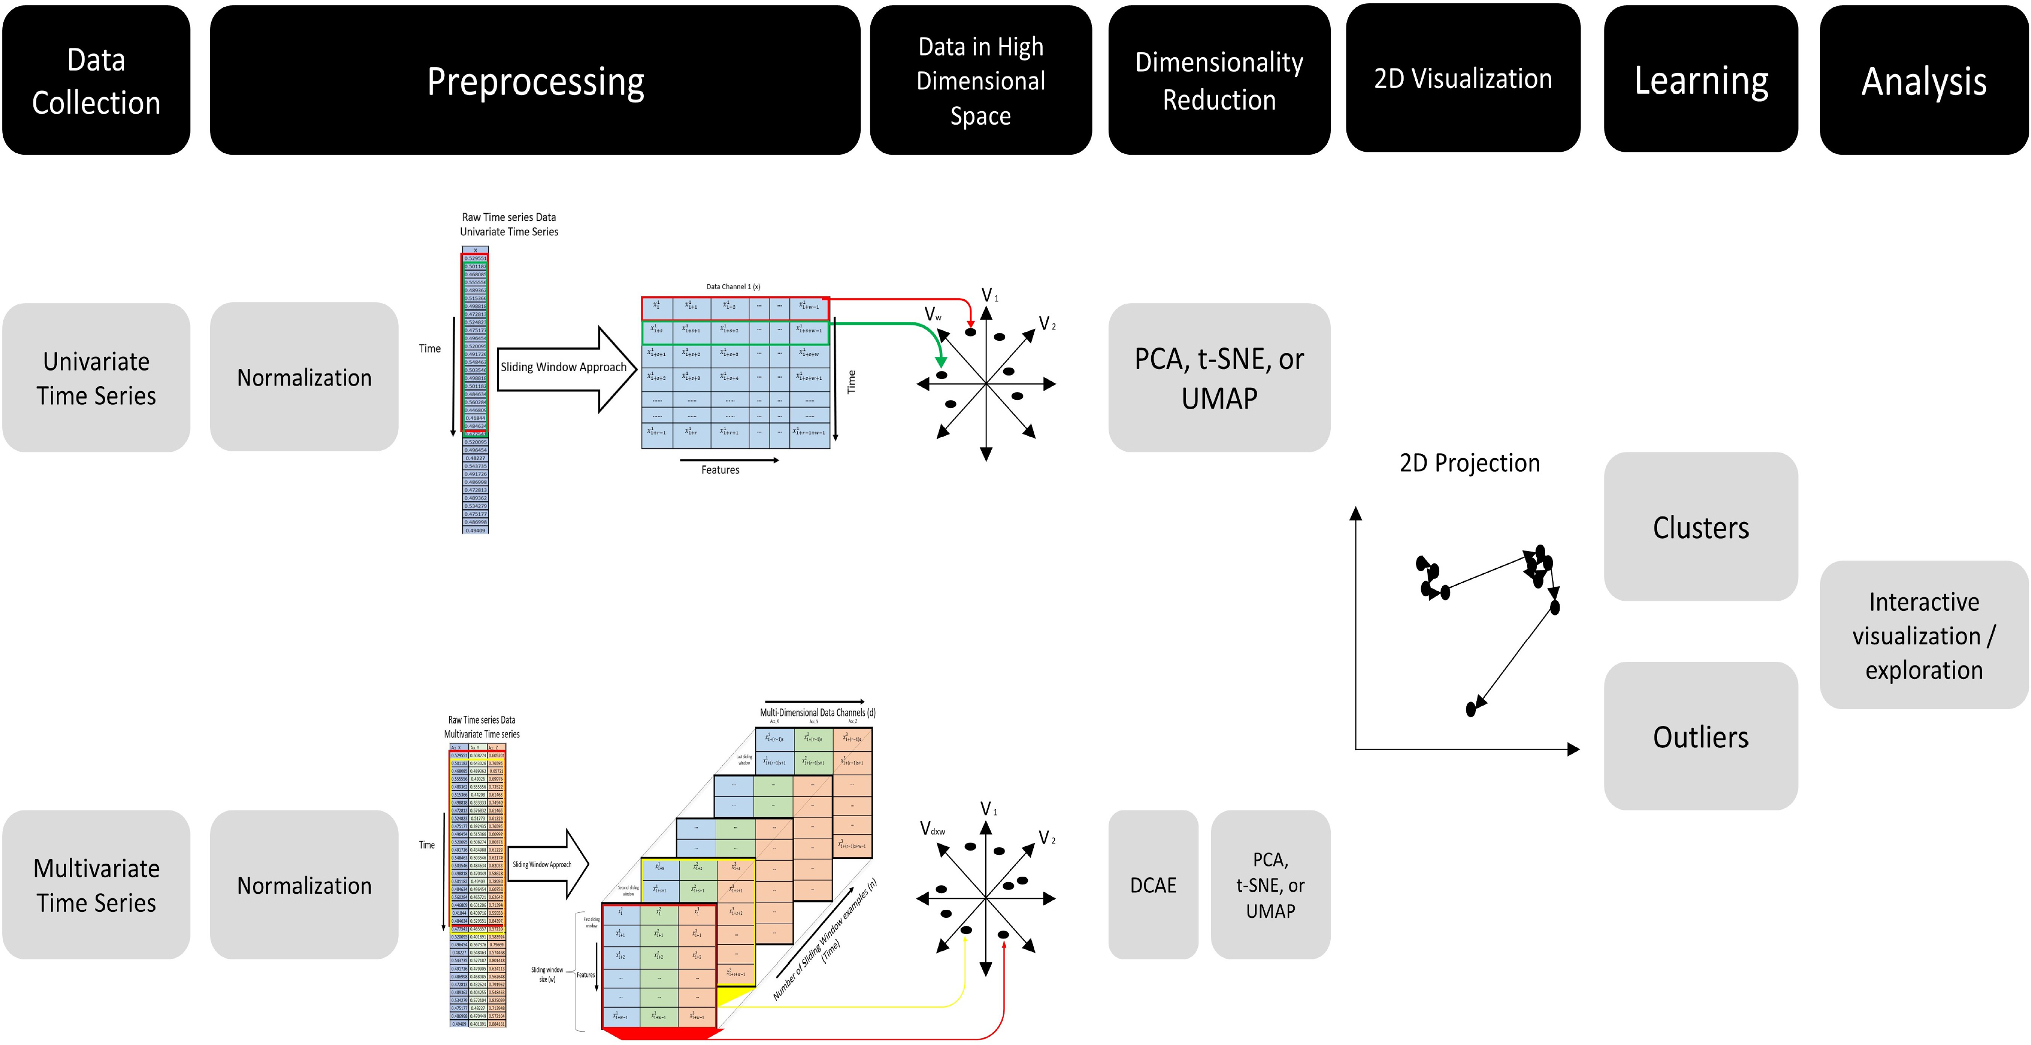 TimeCluster: dimension reduction applied to temporal data